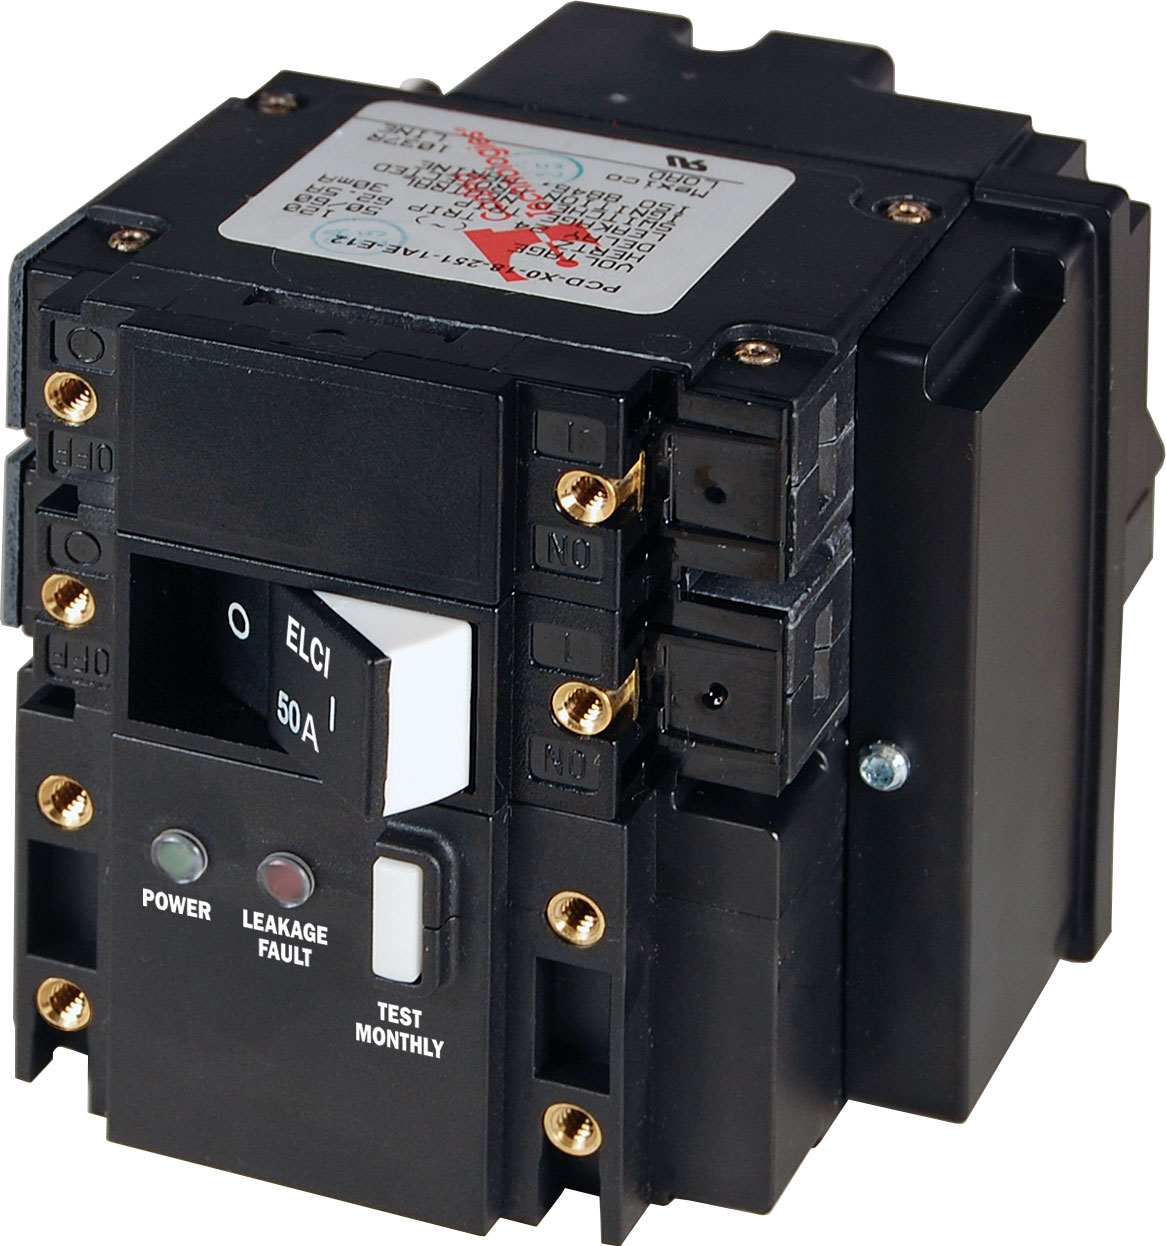 How To Install A 240v Circuit Breaker Manual Guide